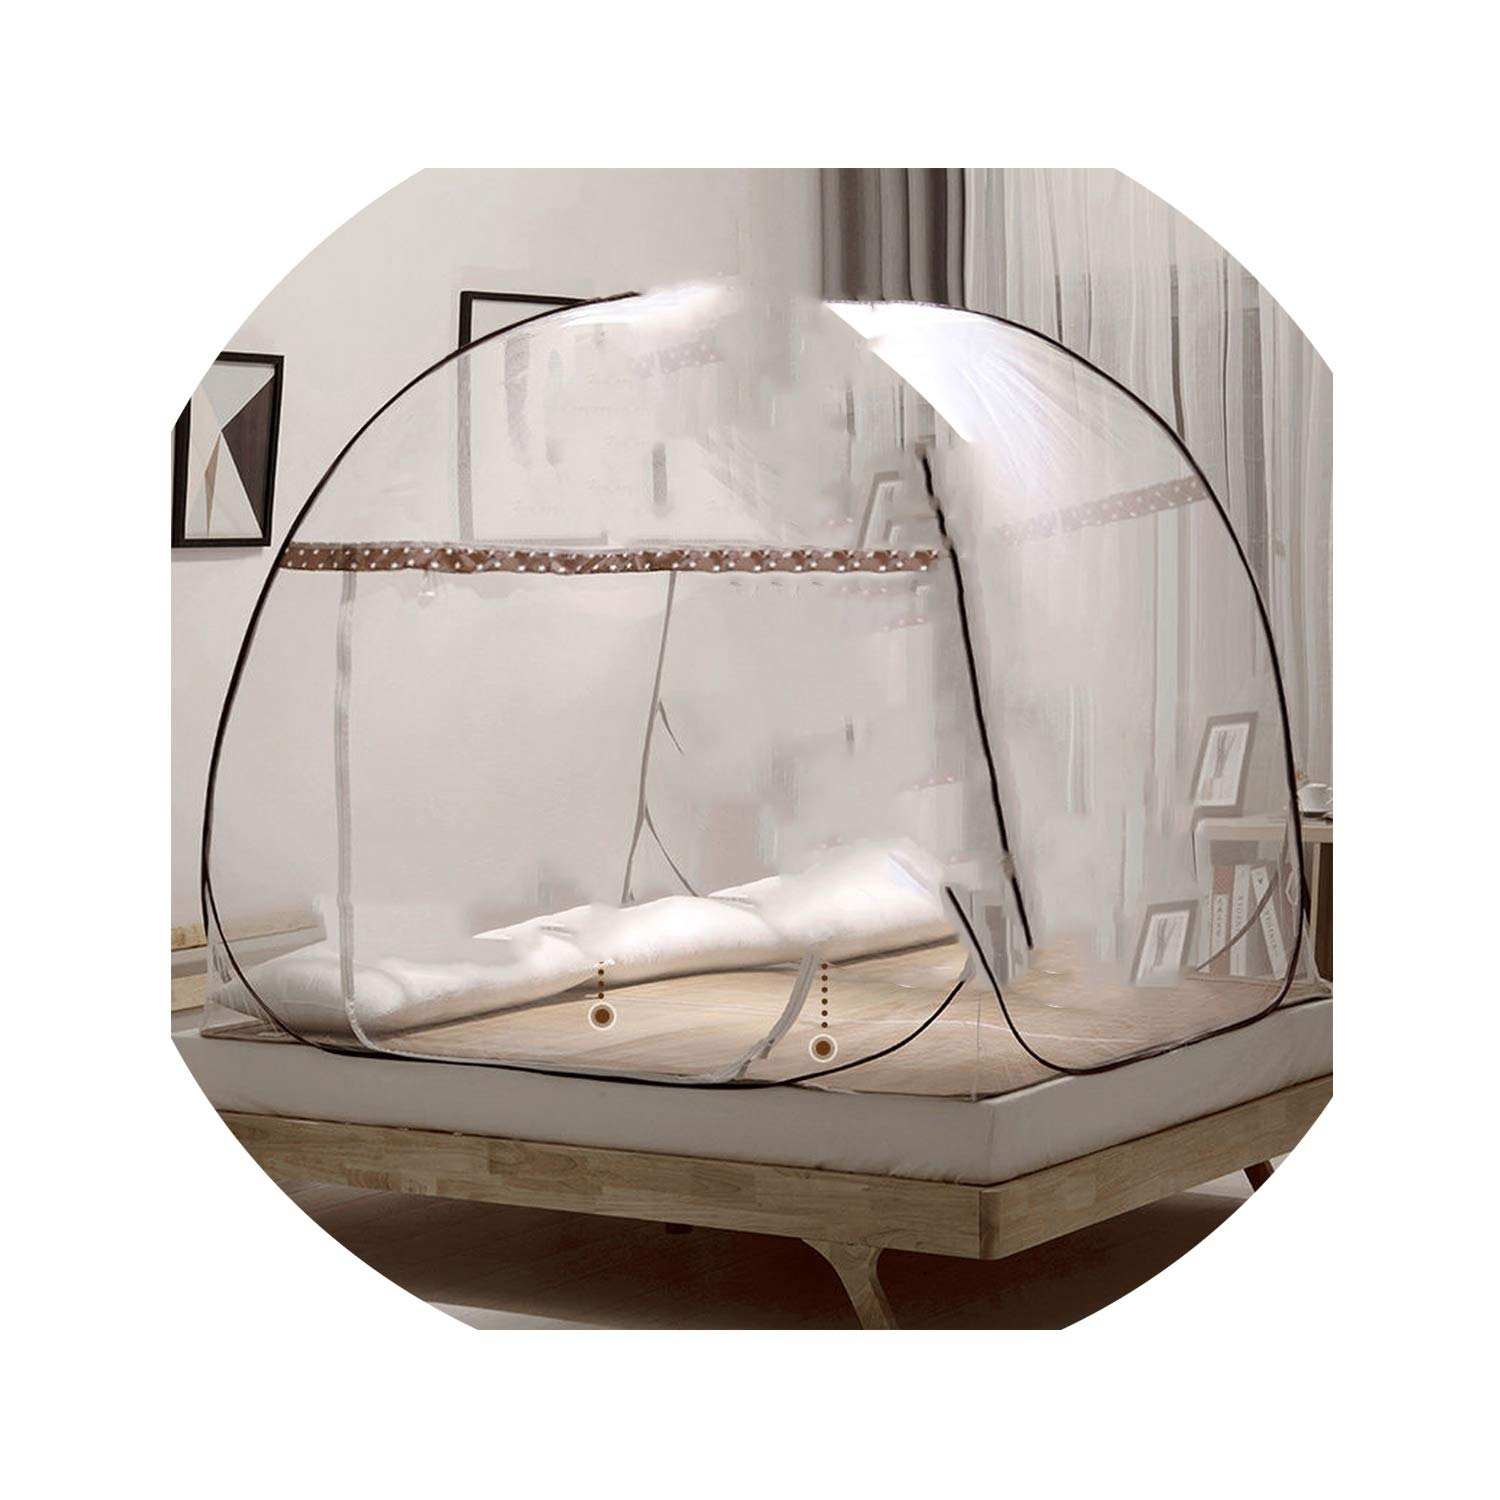 boom123 Portable Folding Mosquito Net Mongolian Yurt Insert Mesh Adult Bed Canopy Kids Moustiquaire Blue Foldable Tent Bed klamboe Nets,Brown xx Single-Door,1.8m (6 feet) Bed